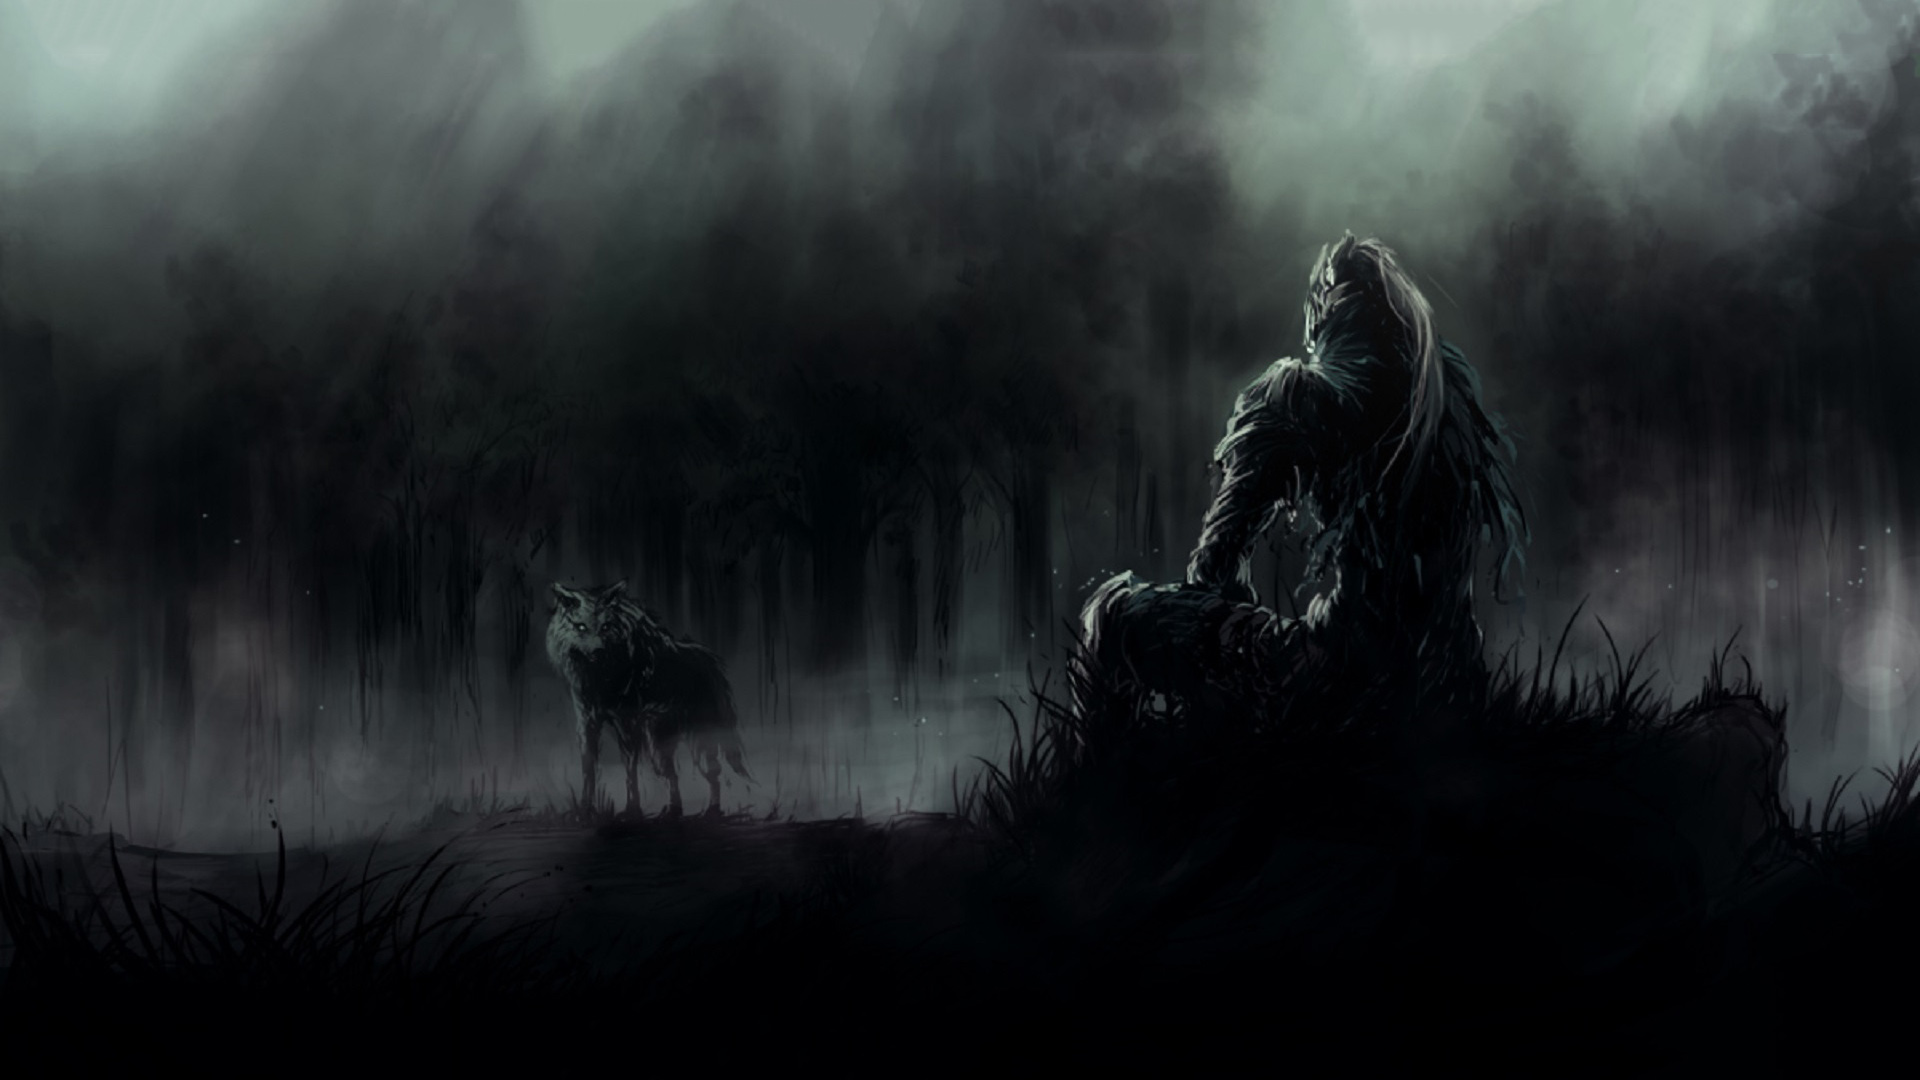 Dark Souls Computer Wallpapers Desktop Backgrounds 1920x1080 ID 1920x1080